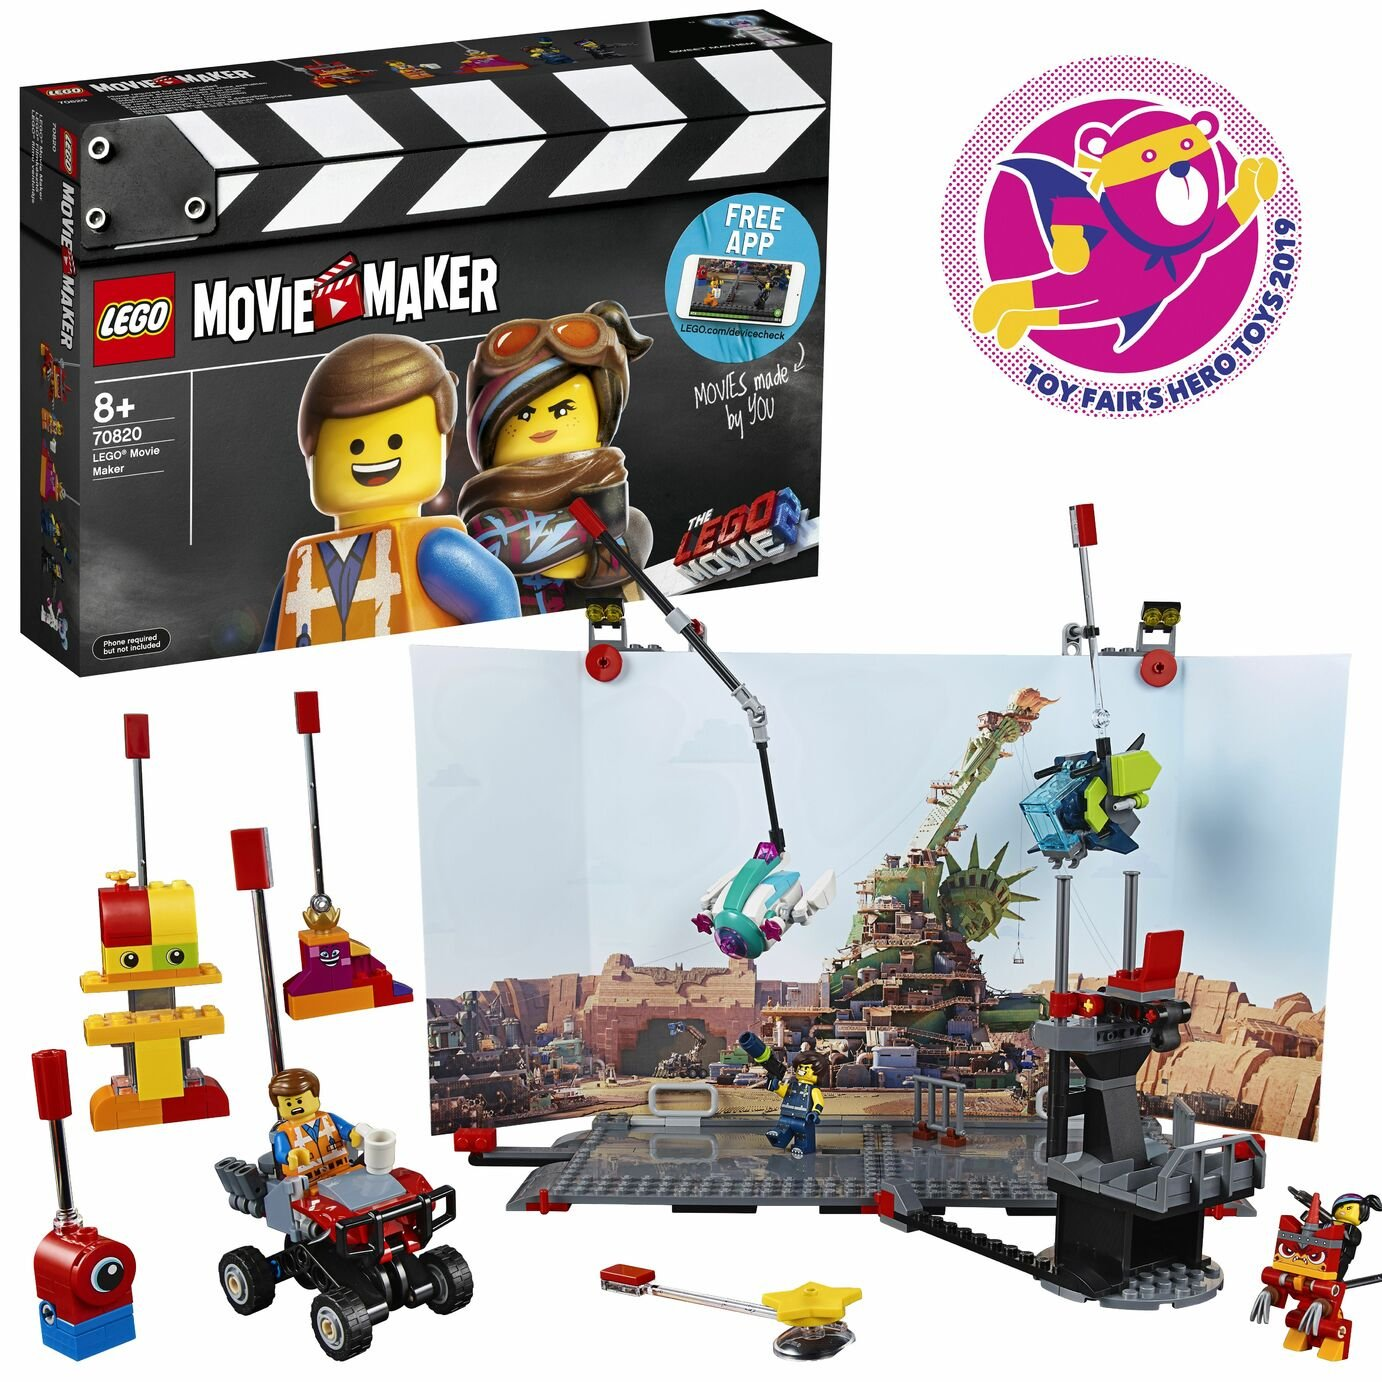 LEGO Movie 2 Movie Maker Building Kit - 70820